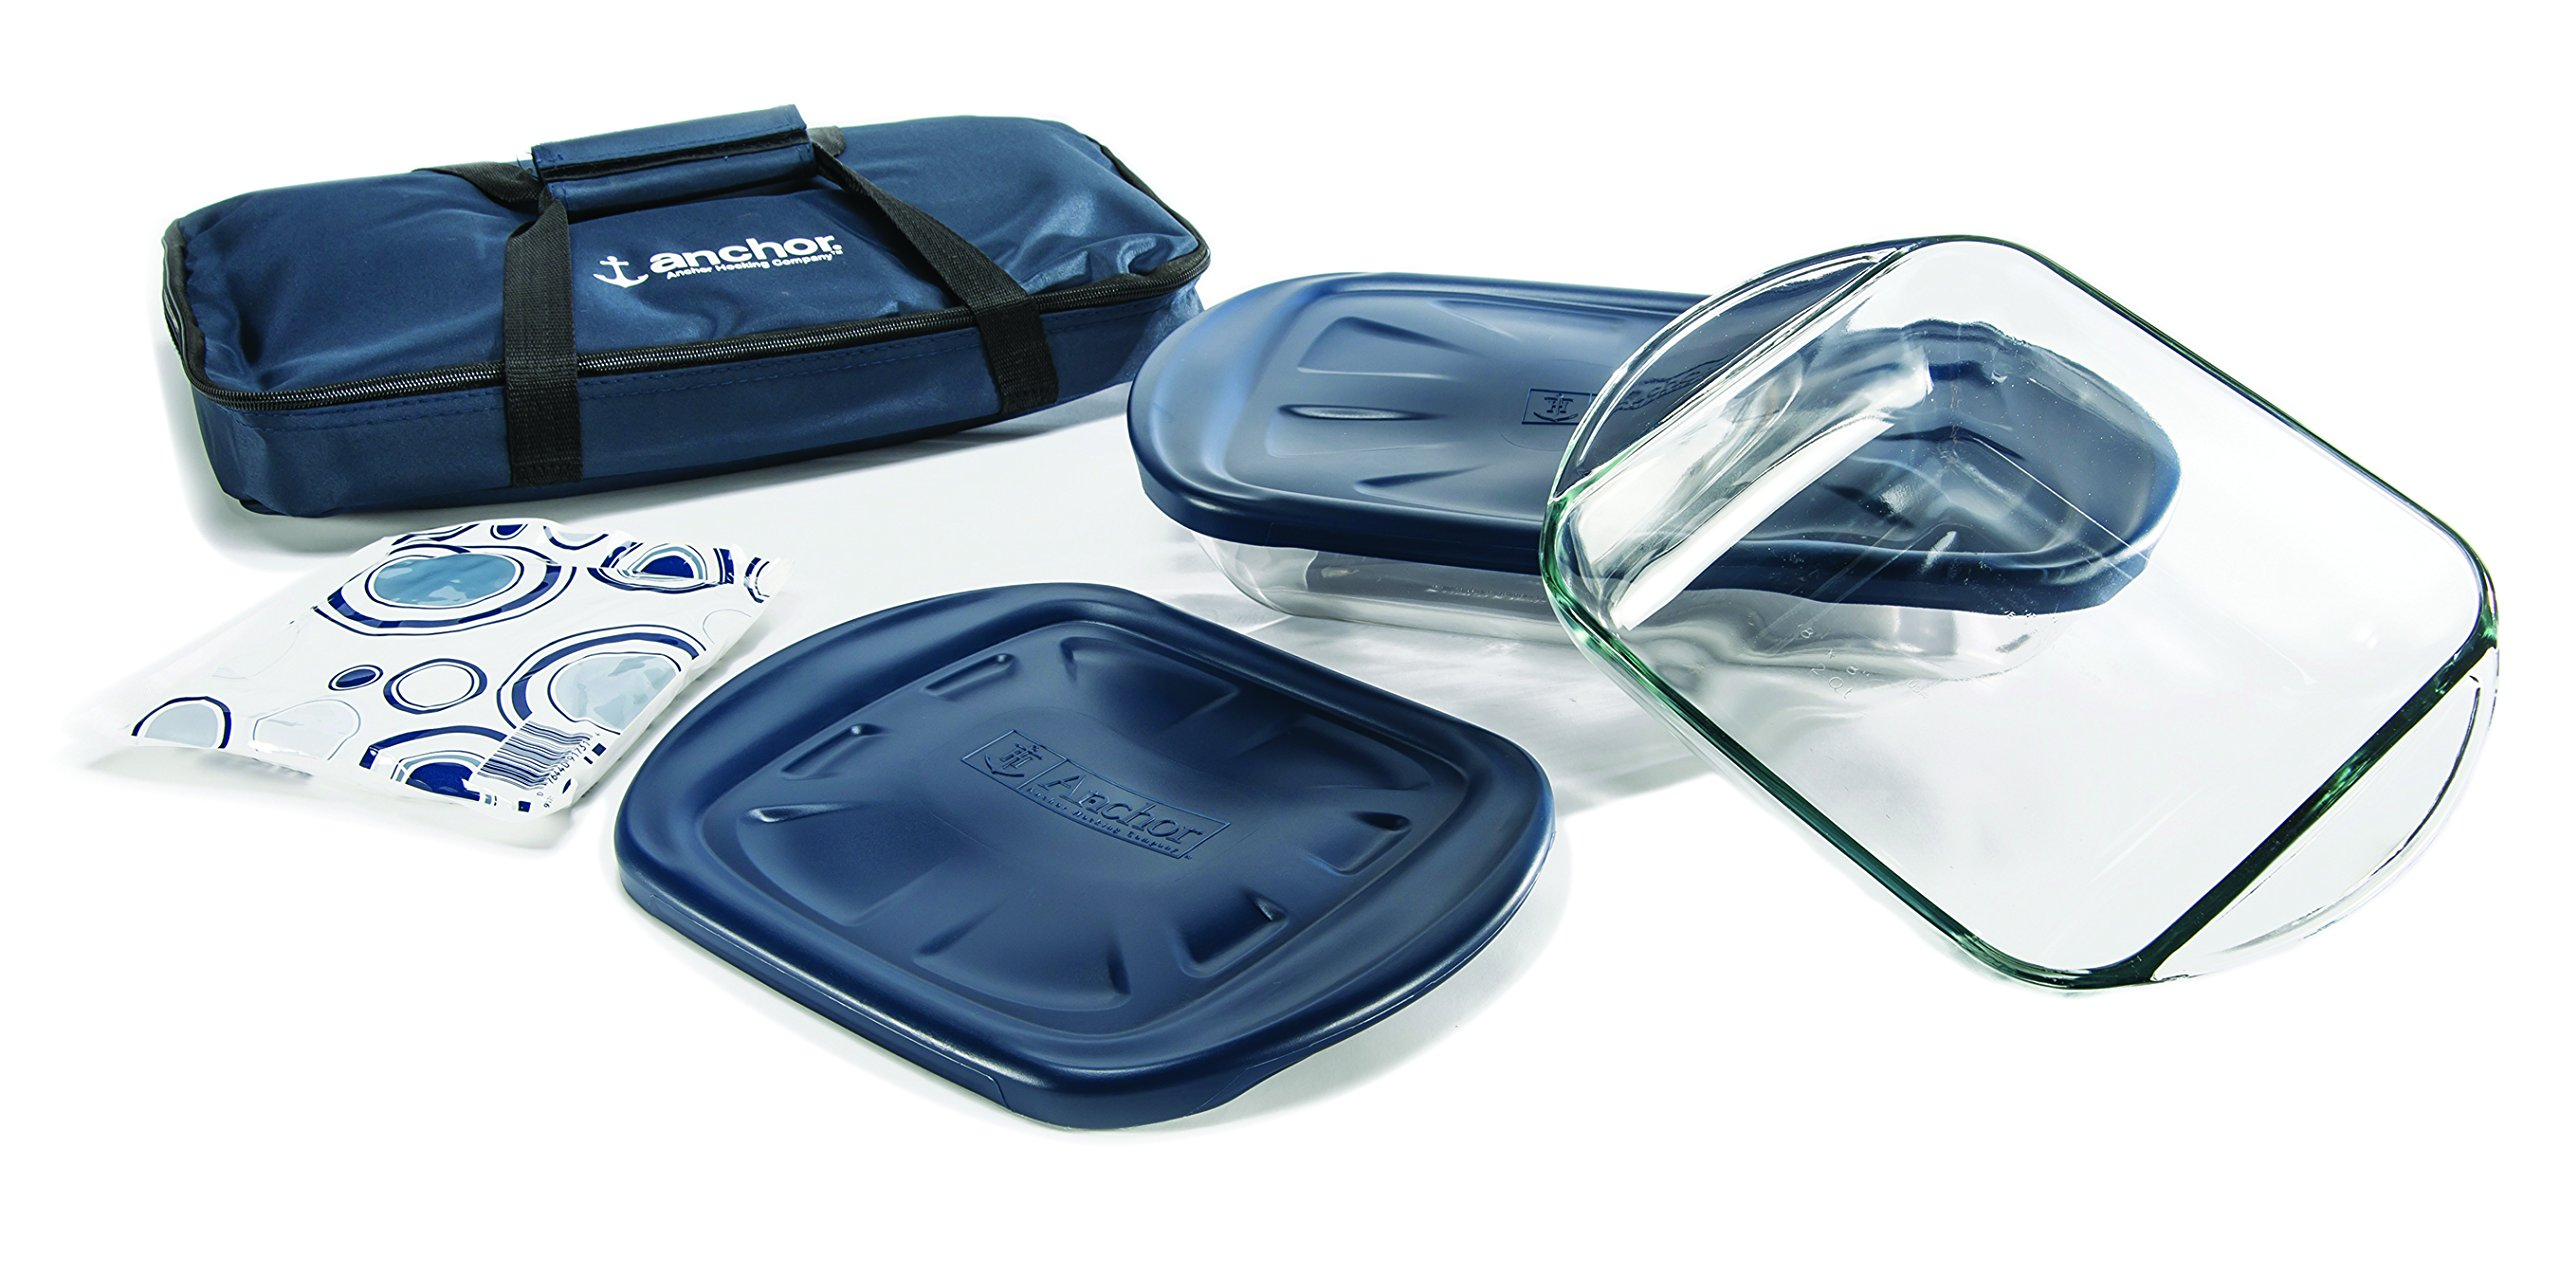 Anchor Hocking 6-Piece Essentials Bake-N-Take Set with Blue Plastic Lid and Blue Tote by Anchor Hocking (Image #3)